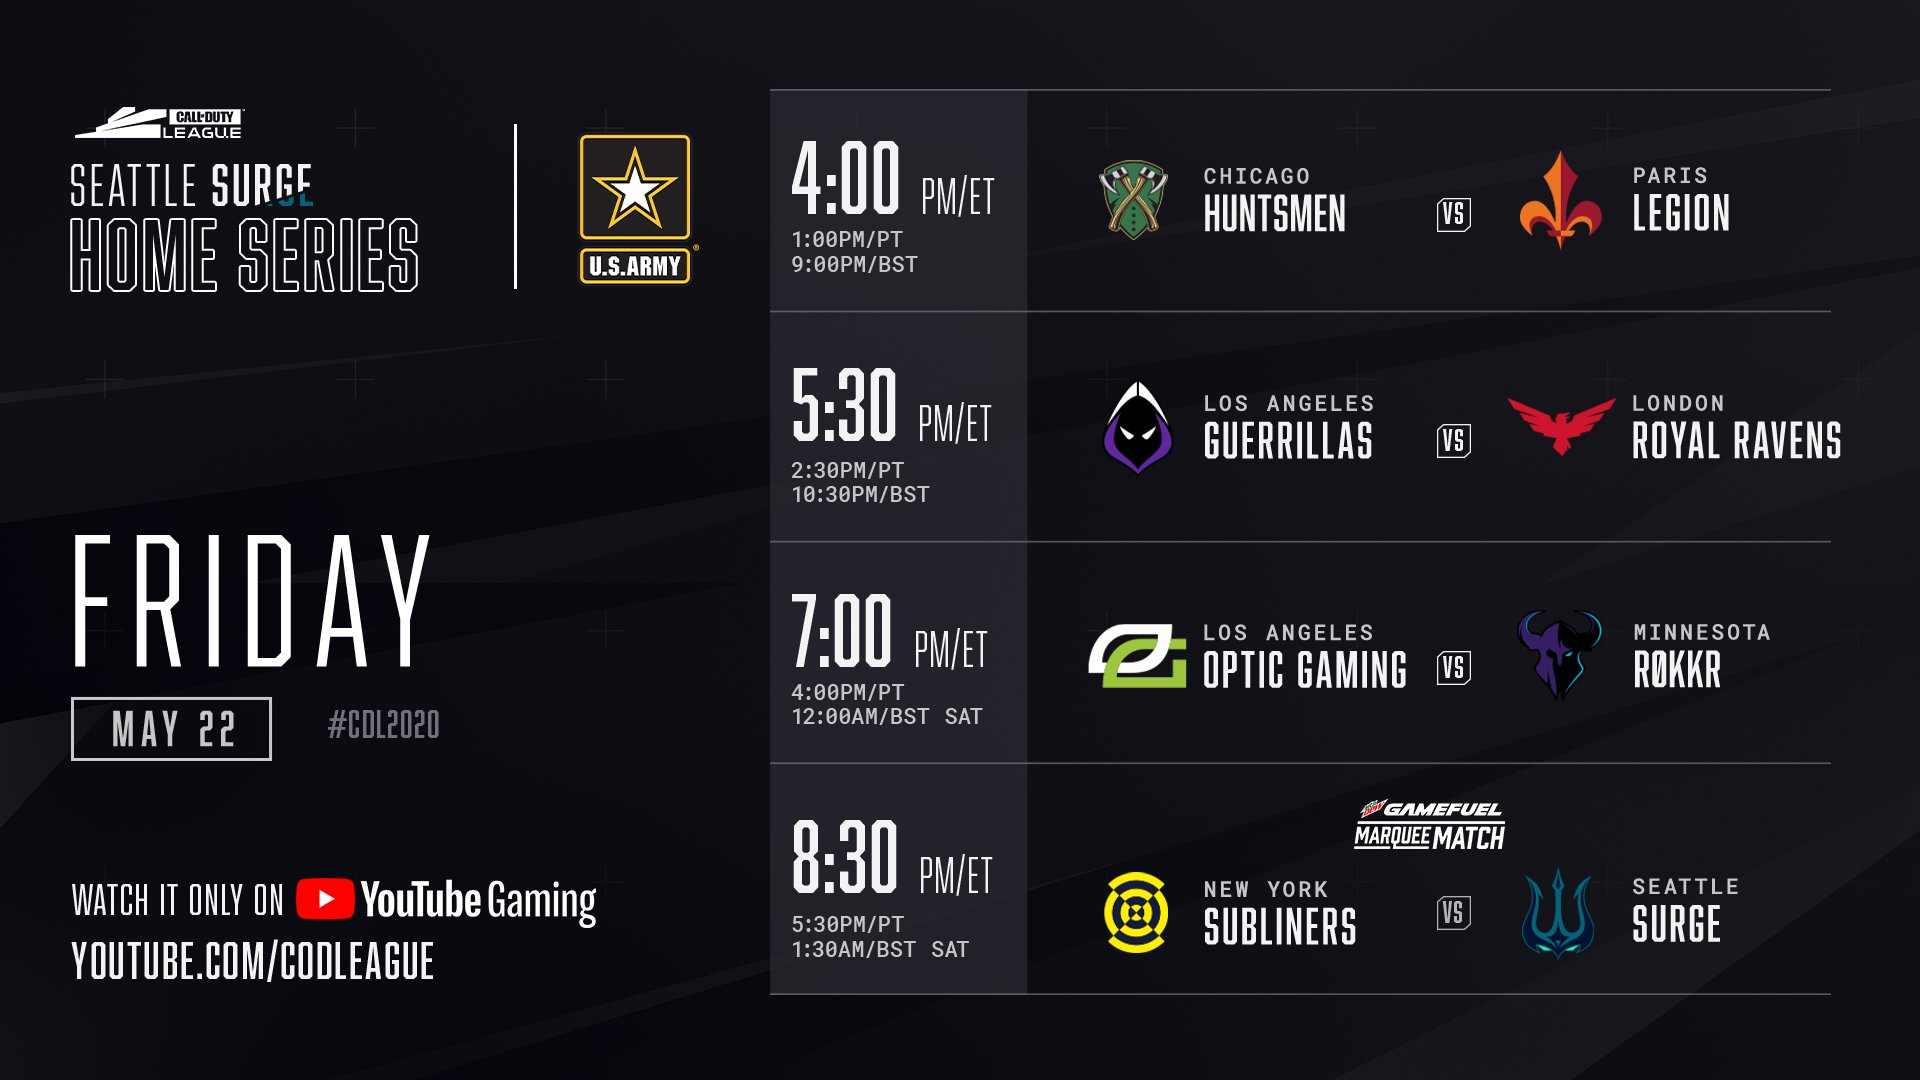 Call of Duty Seattle Surge Home Series Friday Schedule 2020